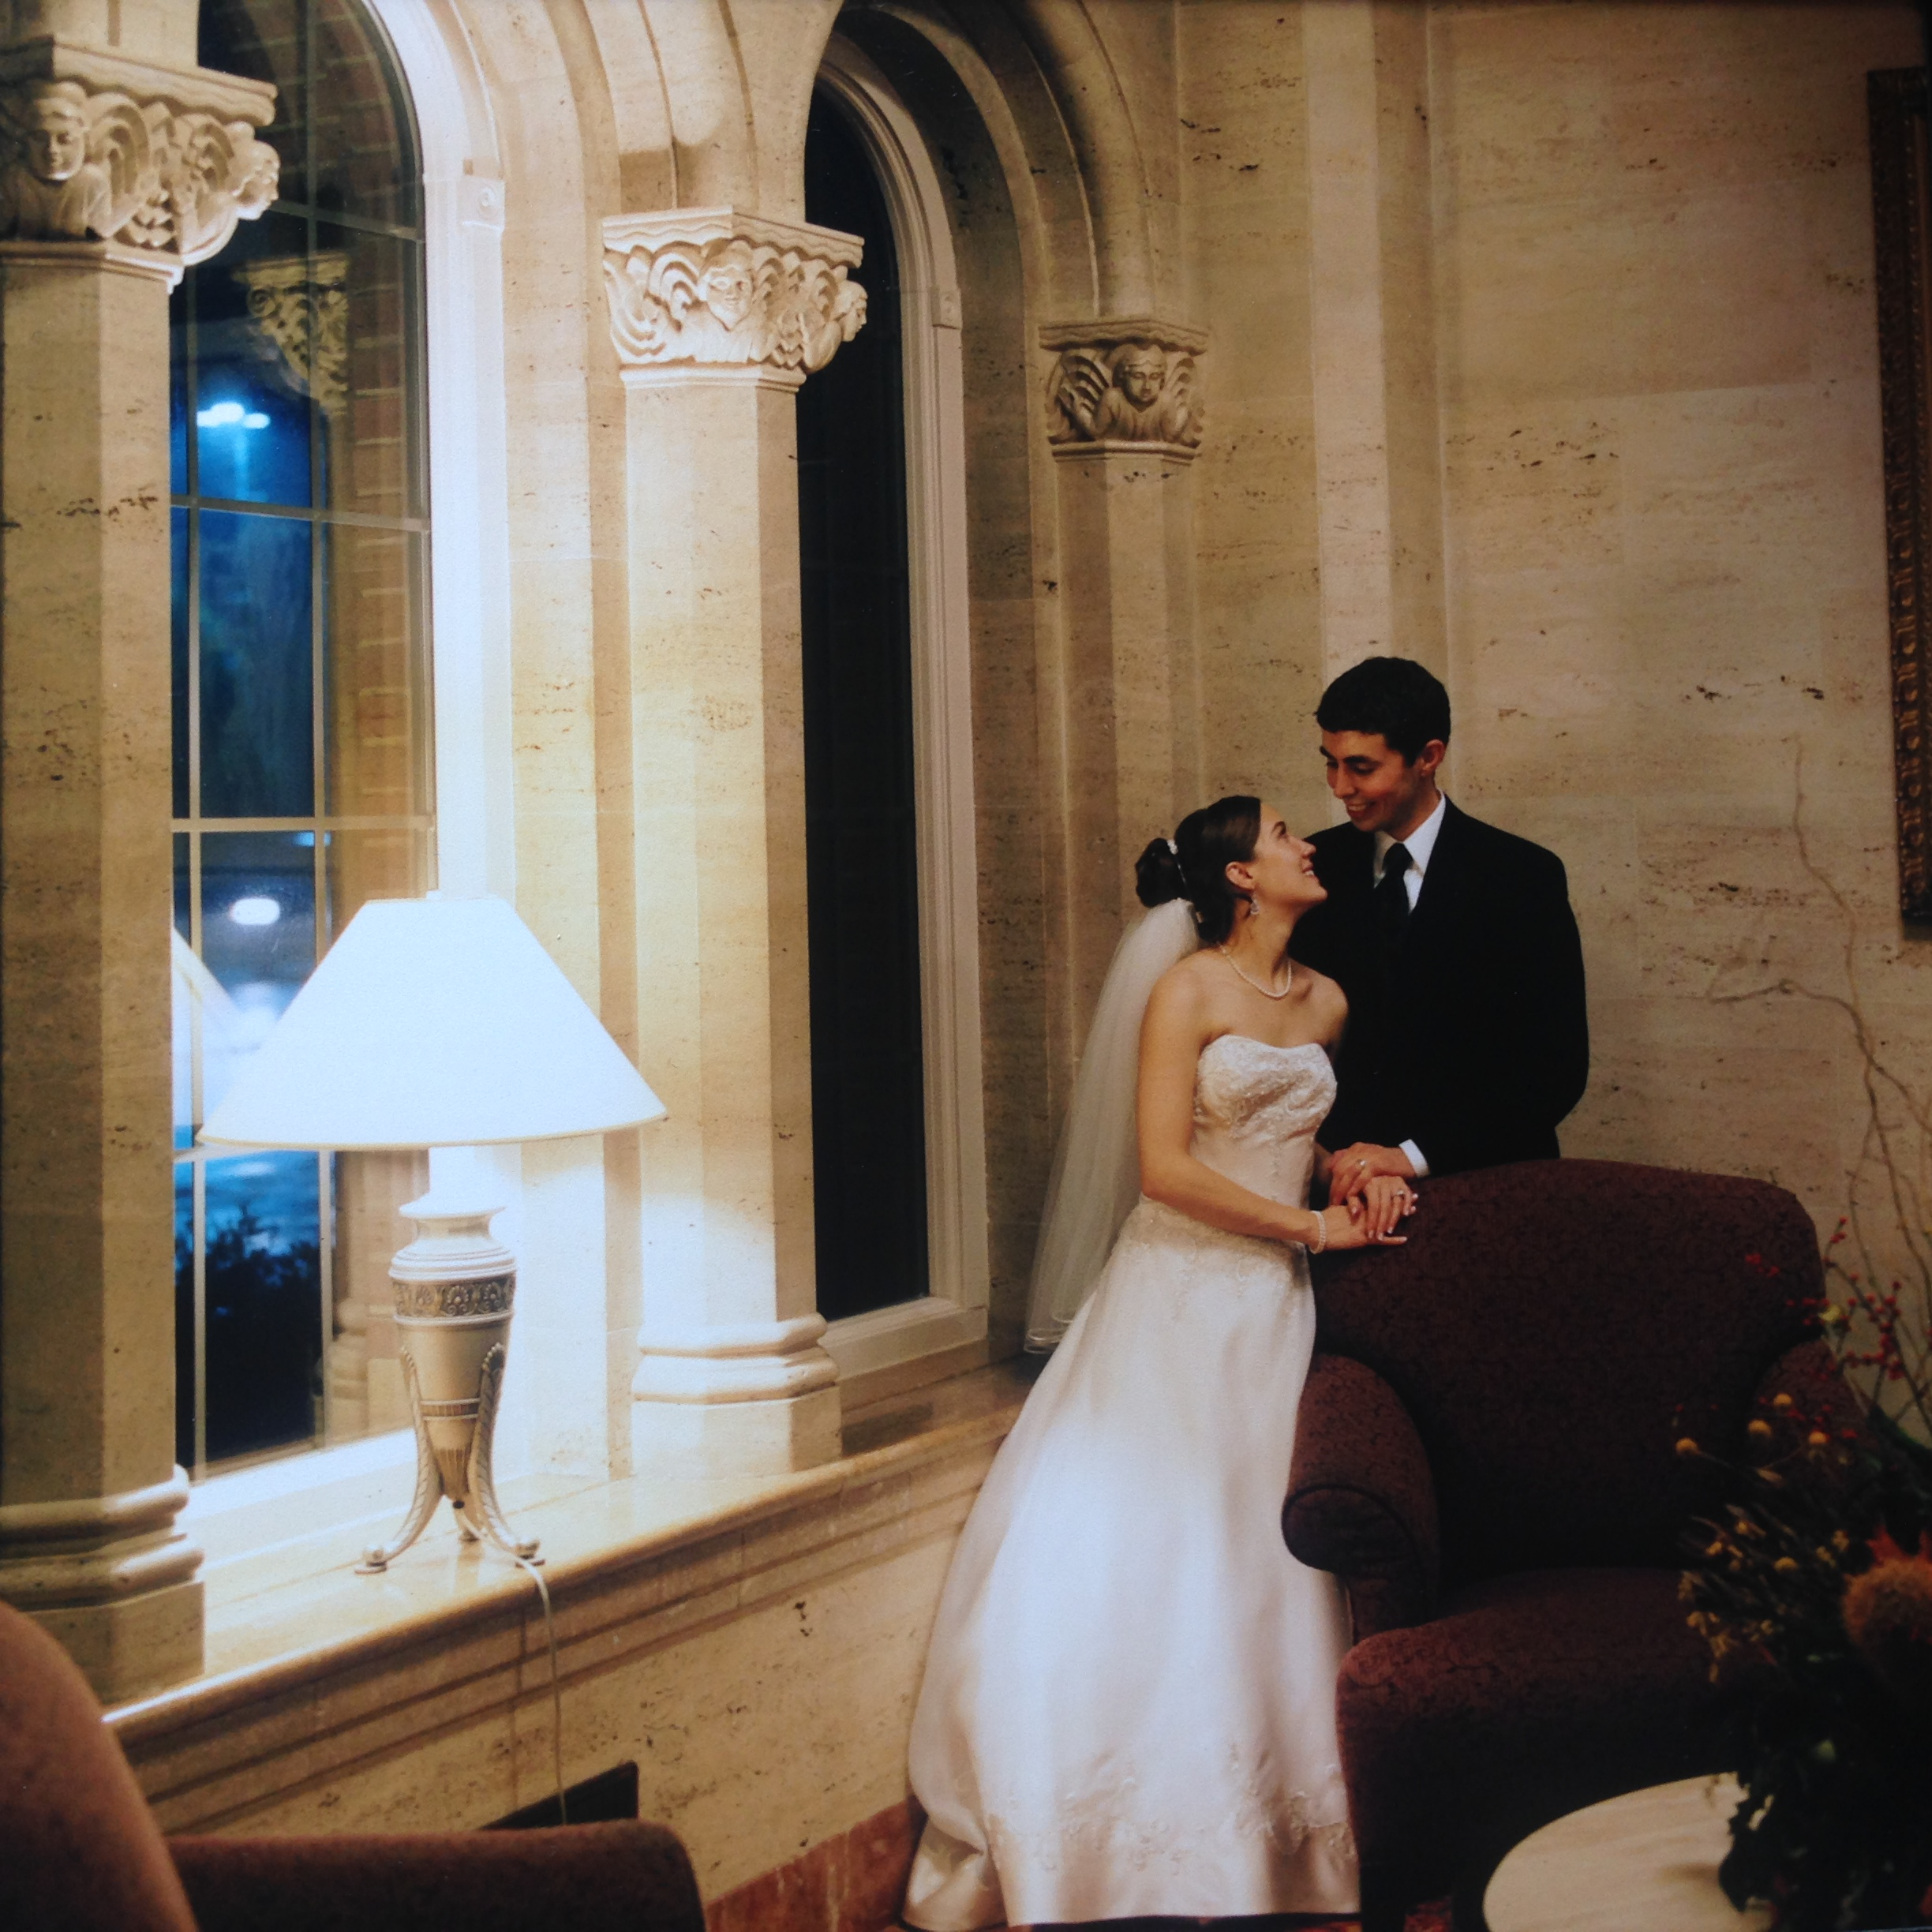 Wedding Reception Locations Where Do You Want To Get Married Weddeo